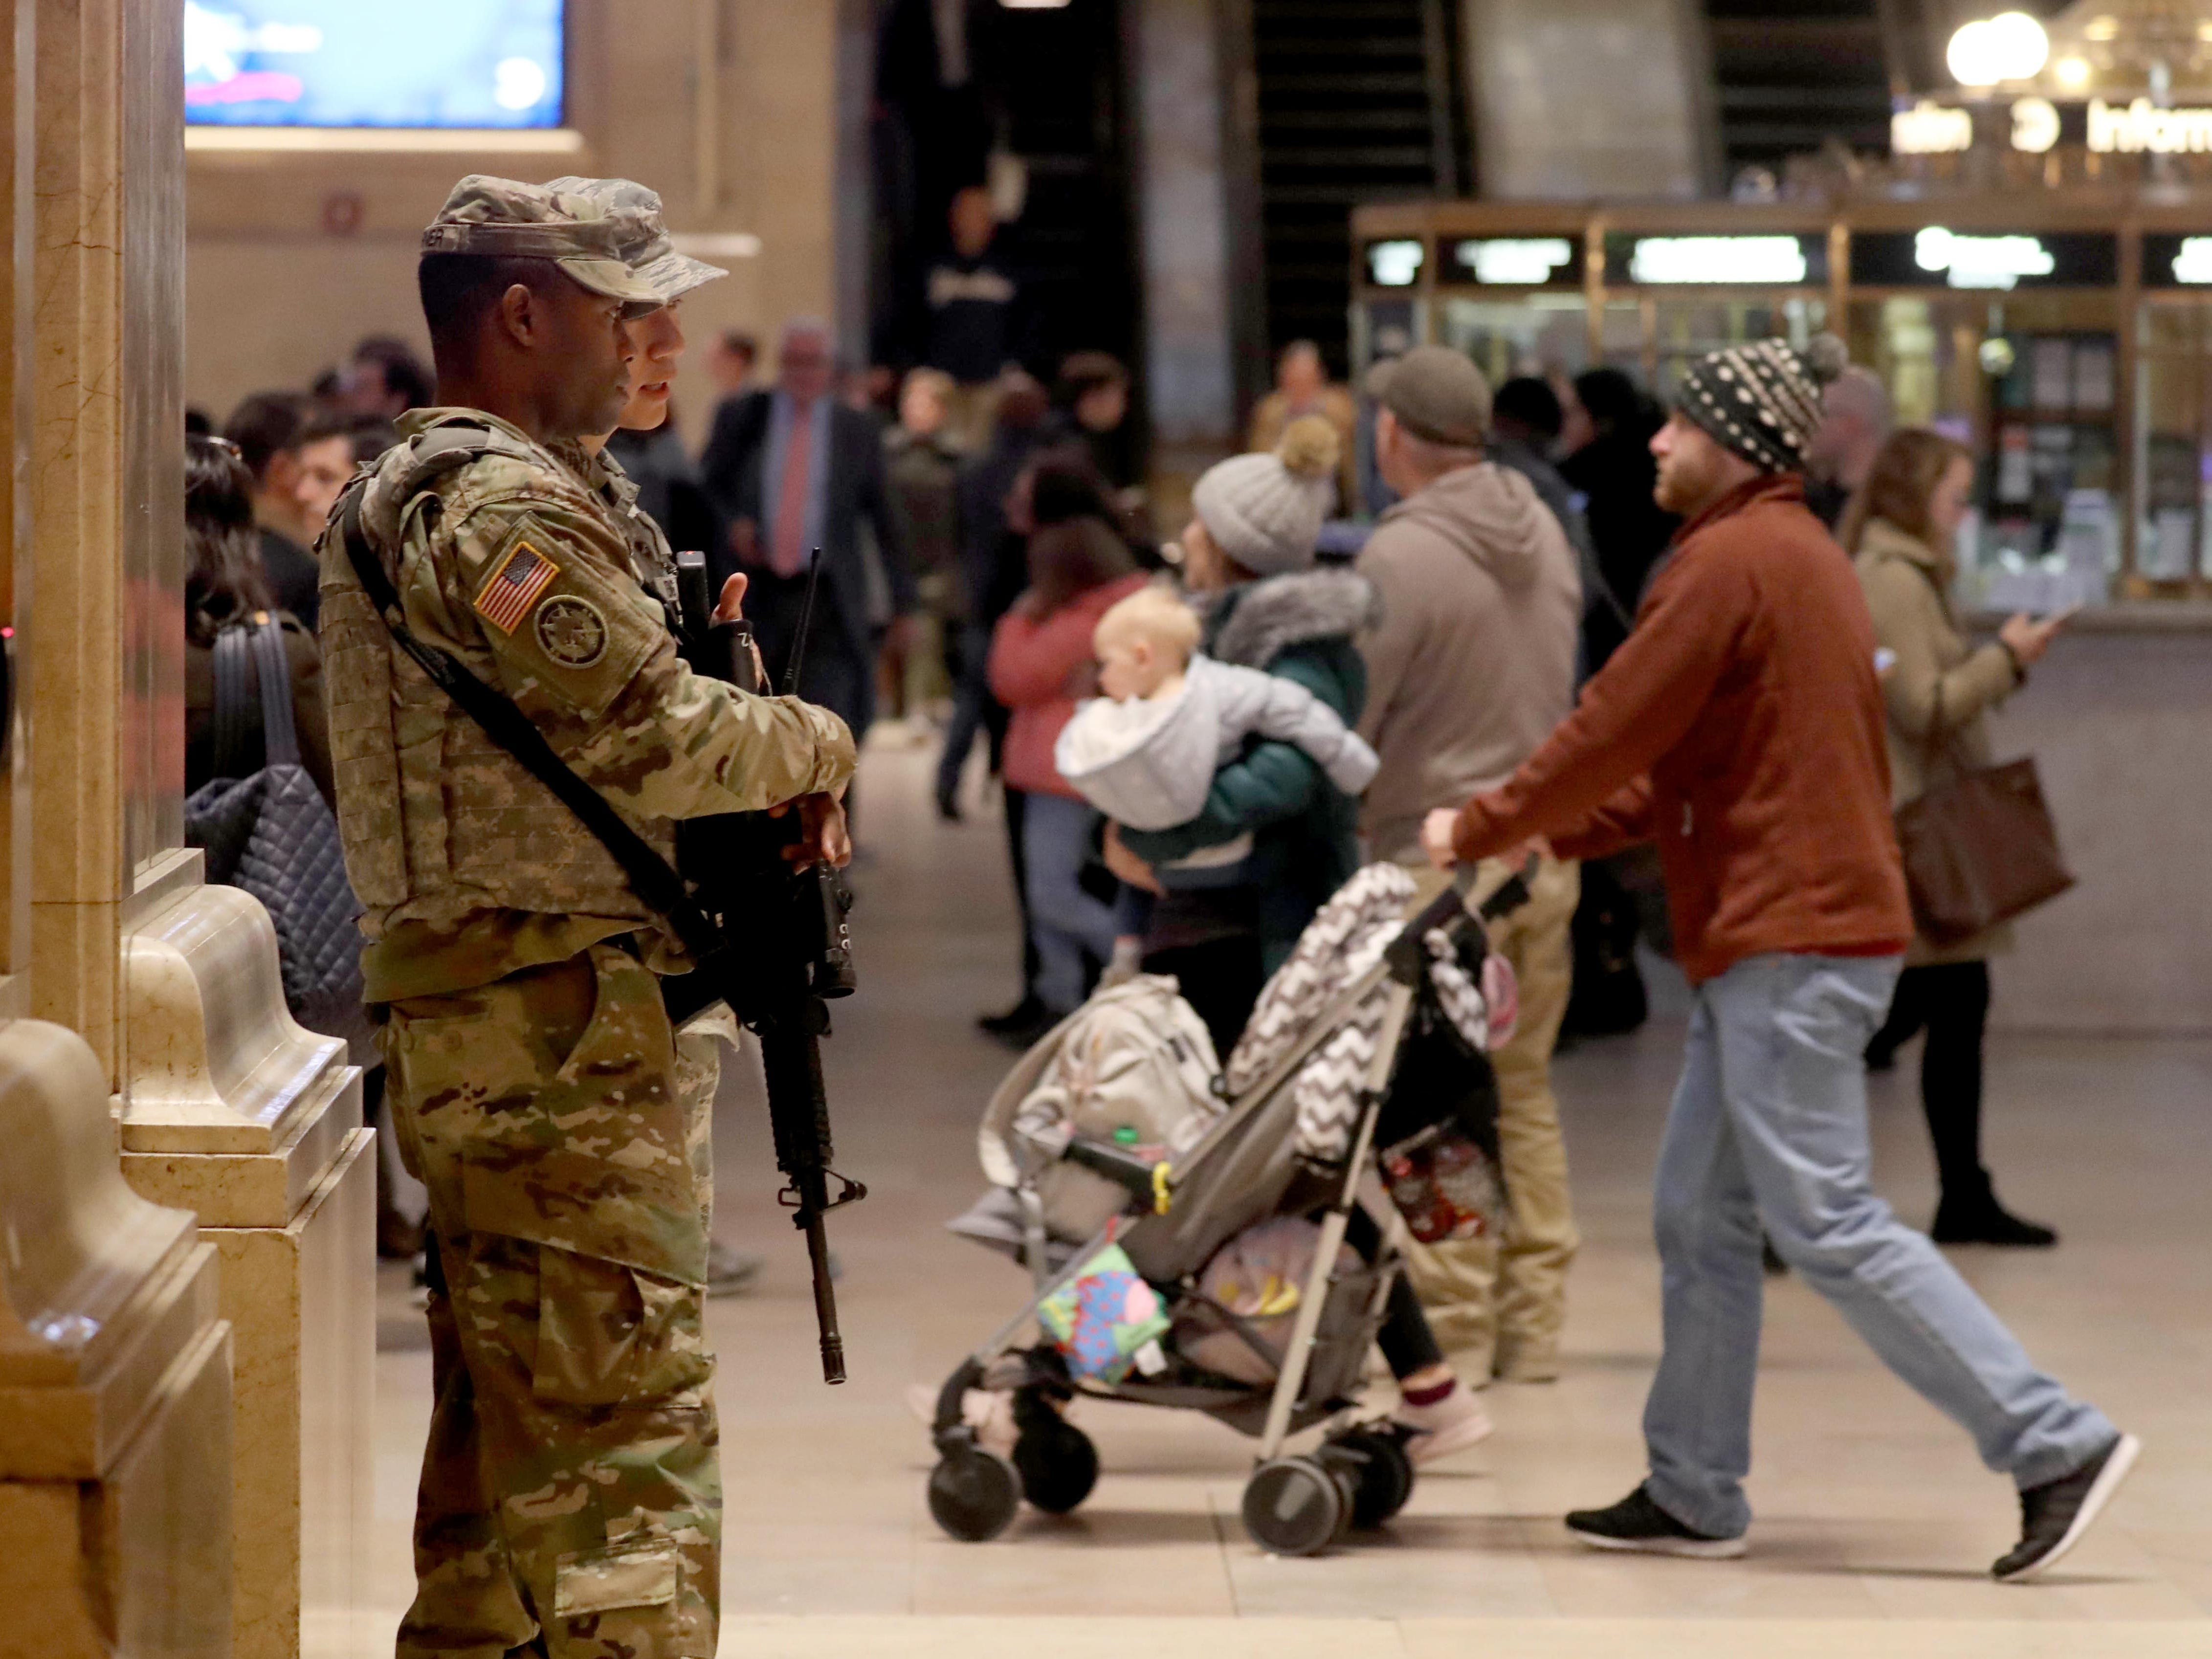 Members of the National Guard patrol Grand Central Terminal in New York, Oct. 24, 2018.